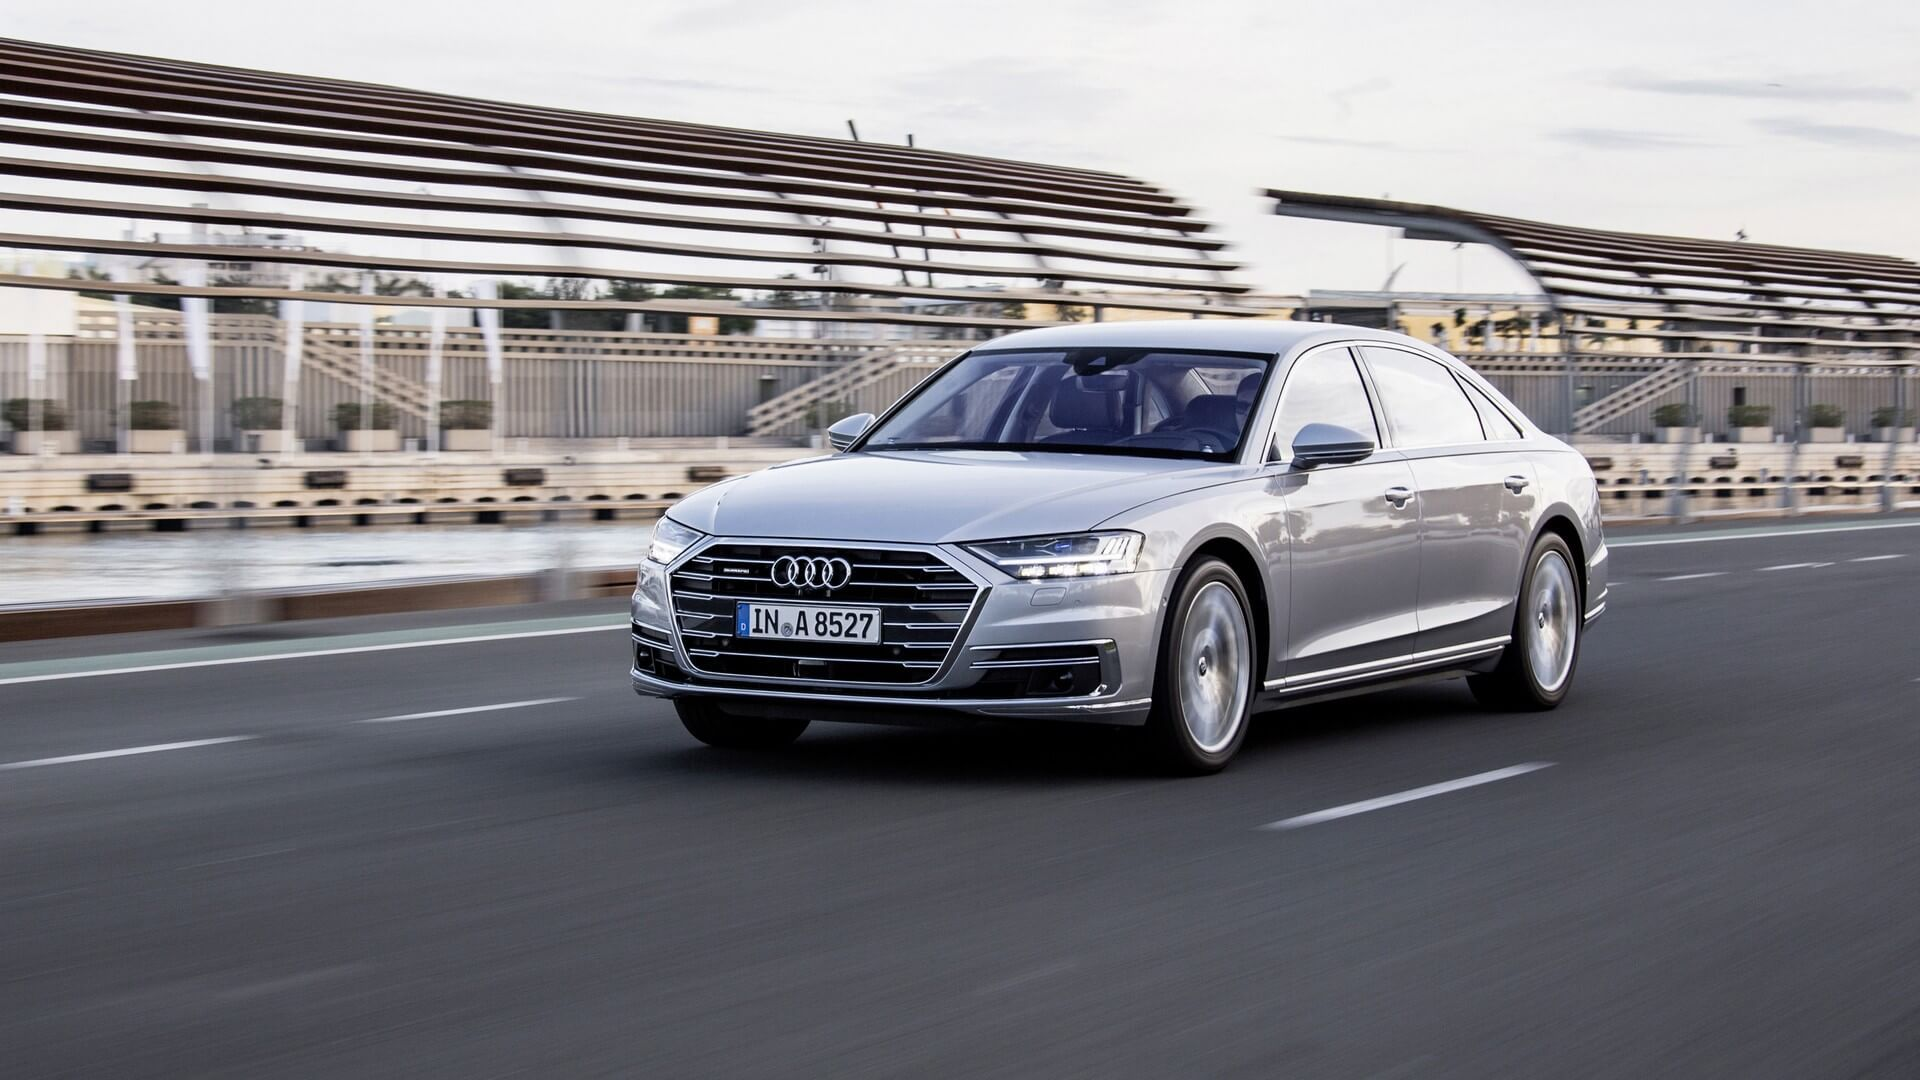 Audi A8 L Discounted By More Than 20 000 But Only In One Country In 2020 Audi A8 Audi Subaru Outback For Sale